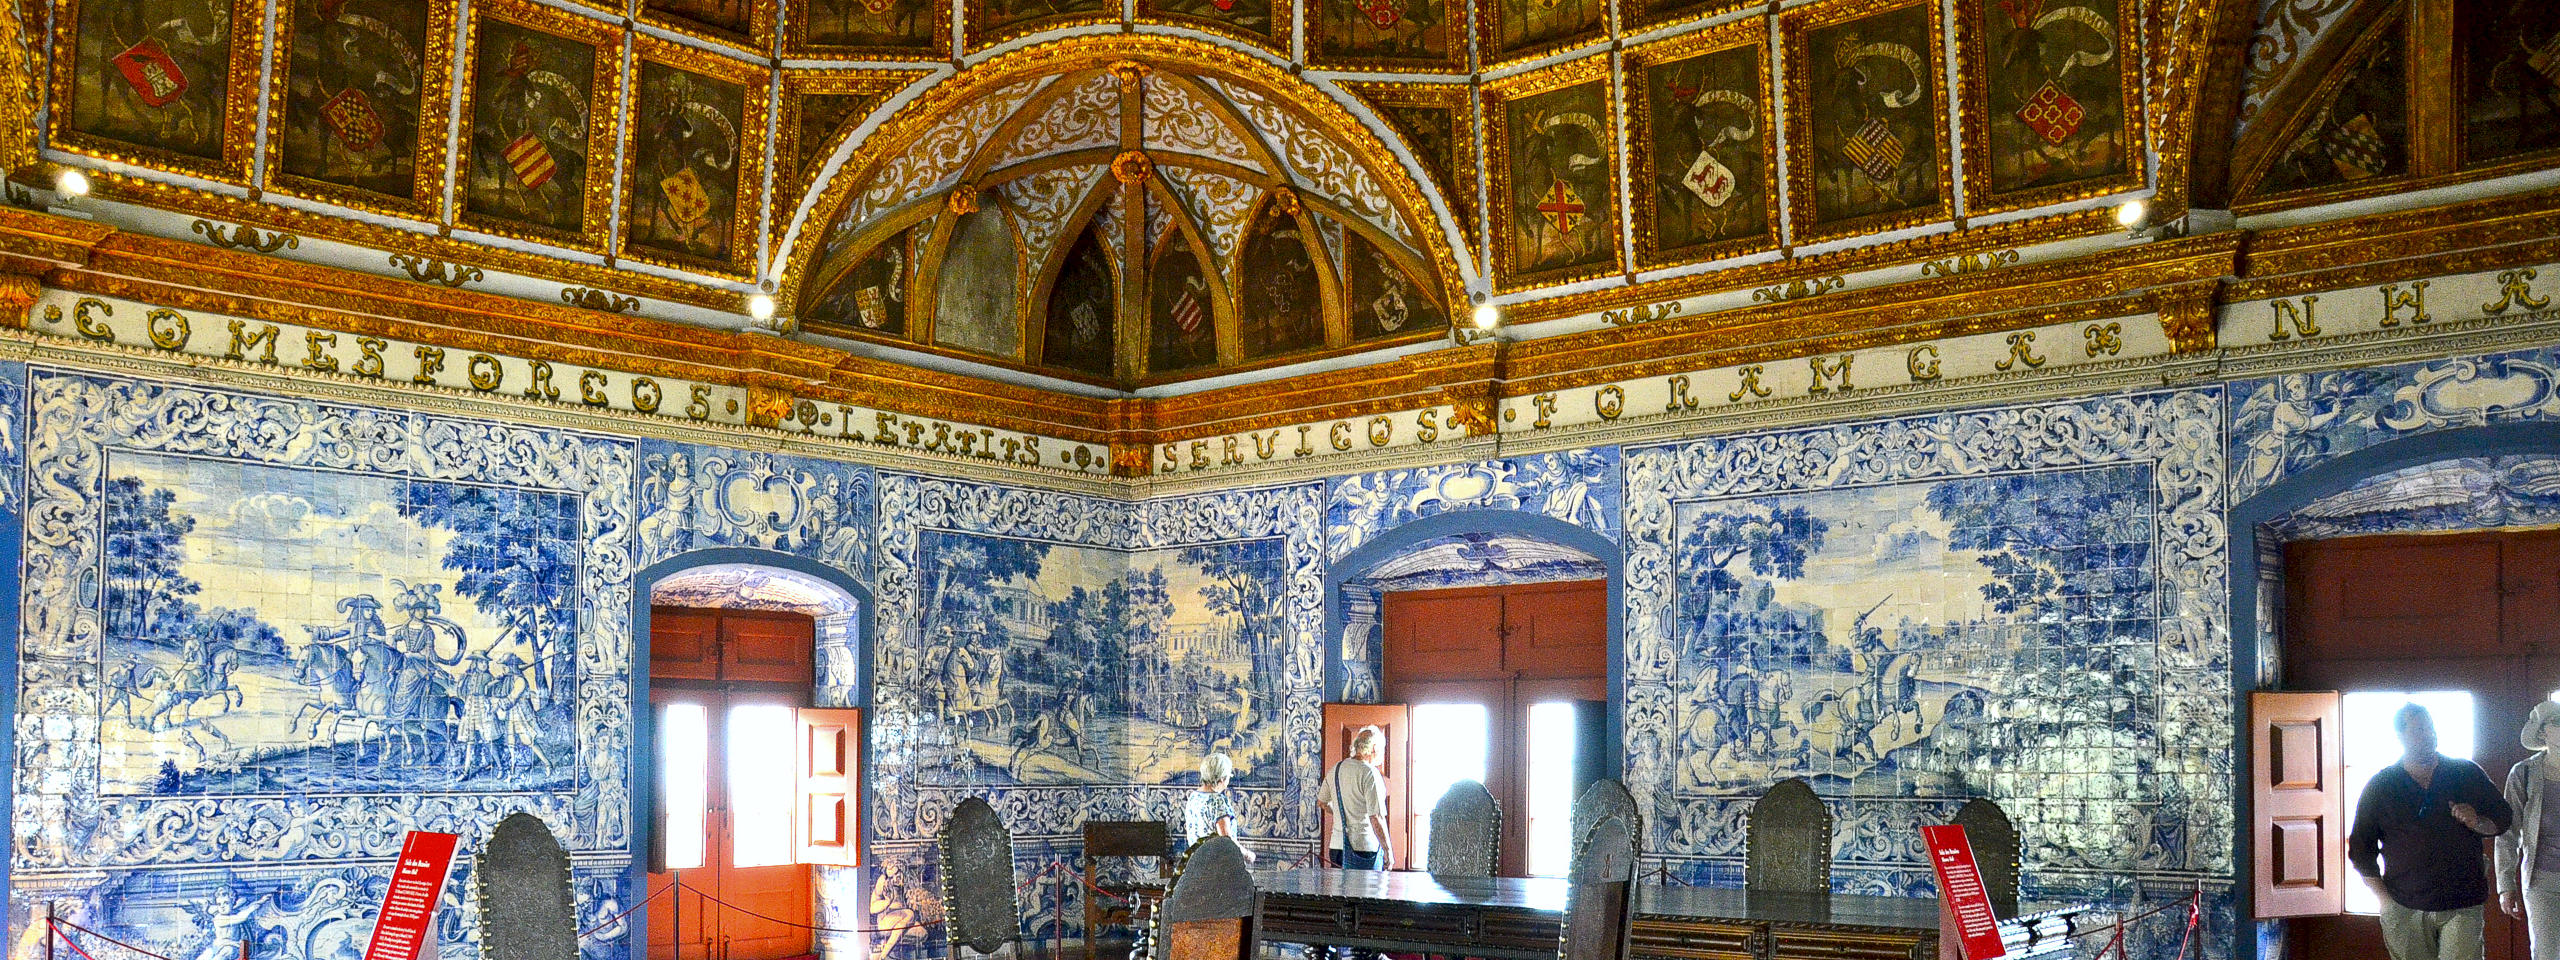 Coat of Arms Room in the Sintra National Palace